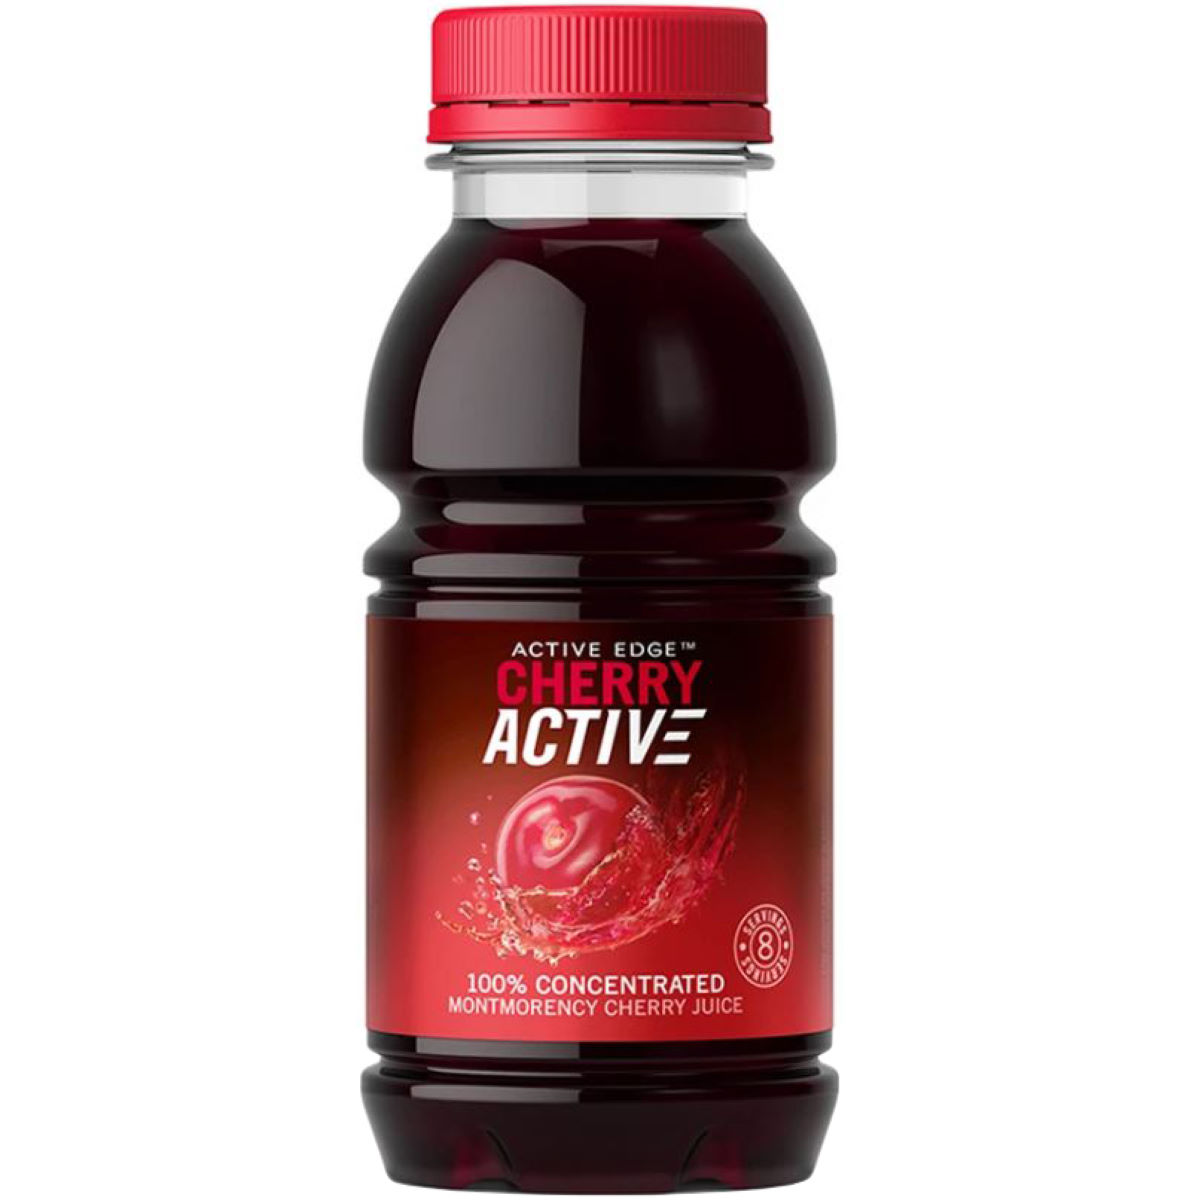 Cherry Active Cherry Active 100% Concentrated Montmorency Cherry Juice   Powdered Drinks